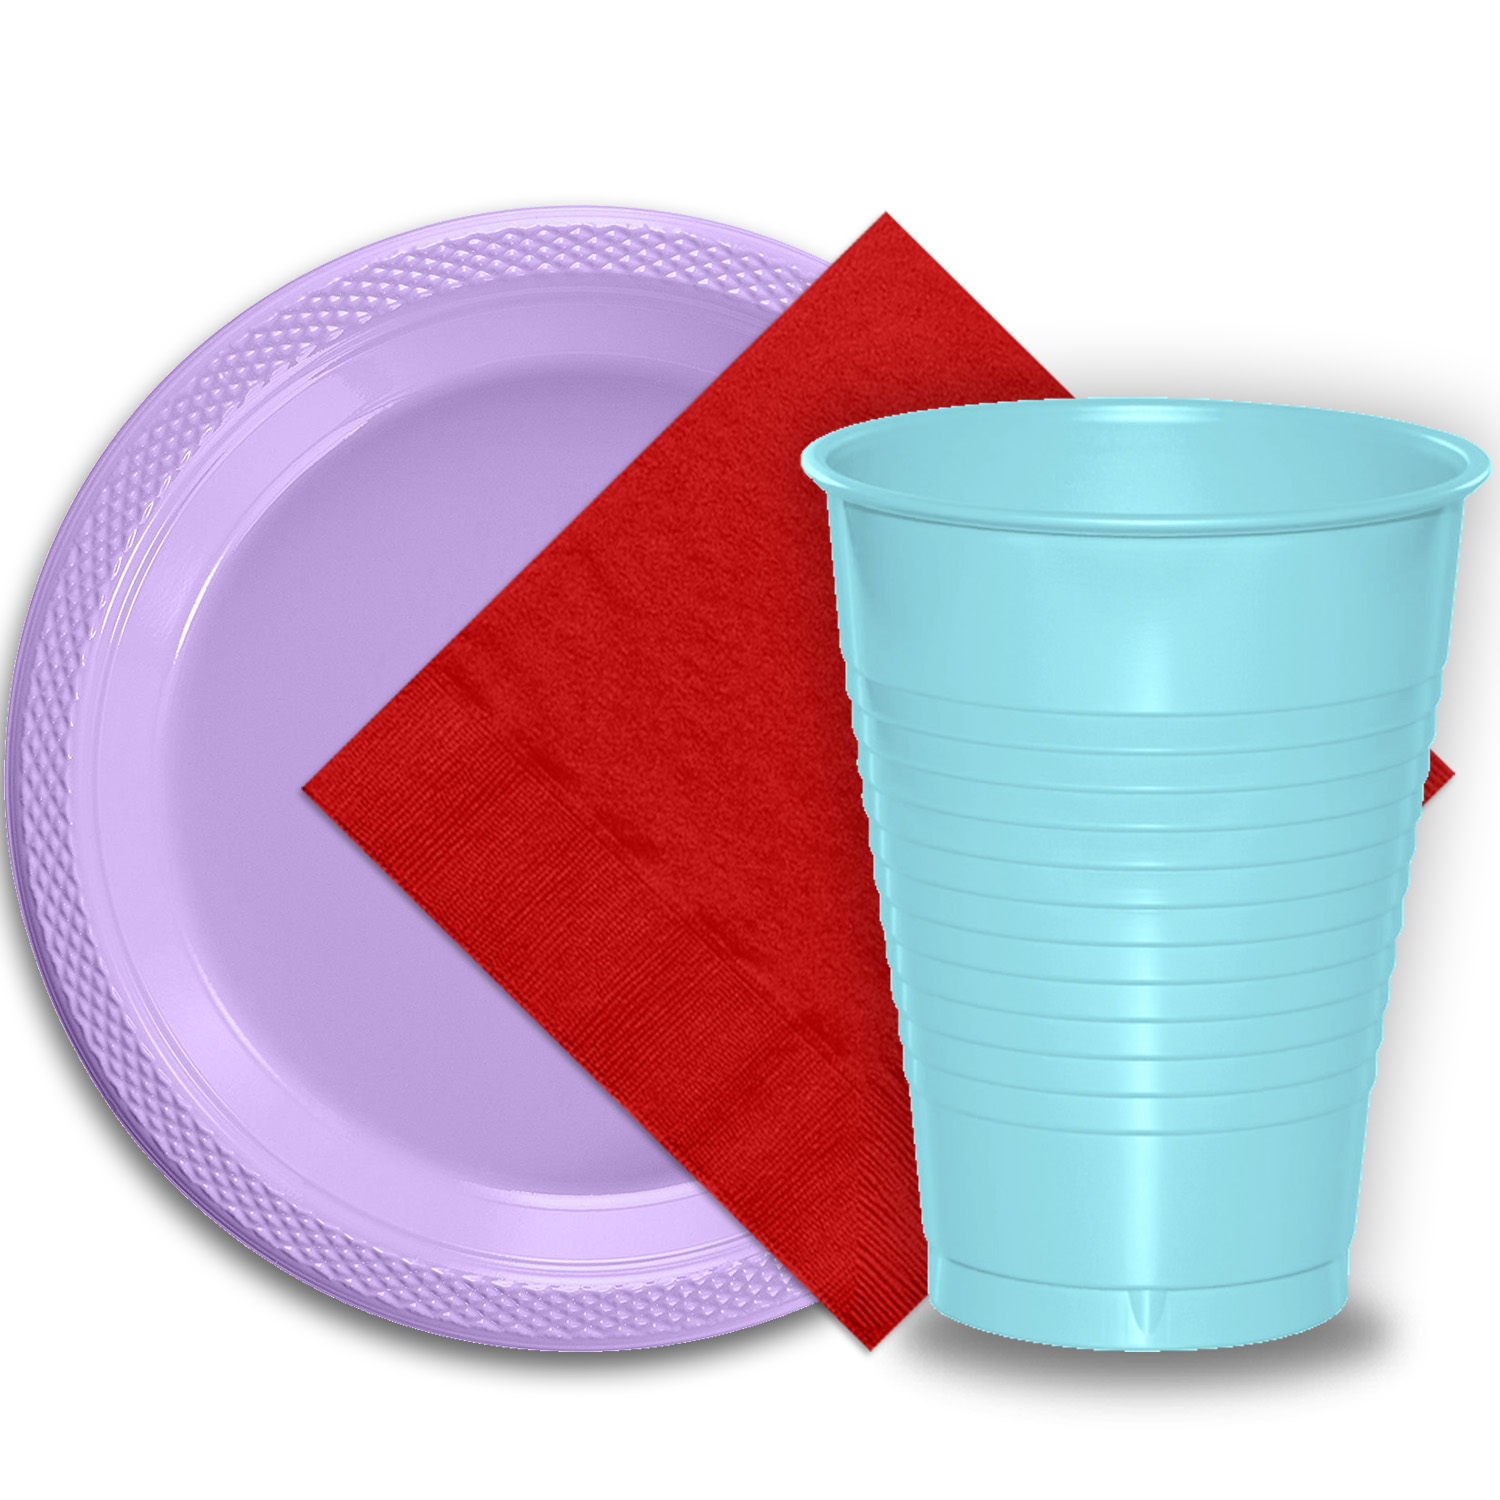 "50 Lavender Plastic Plates (9""), 50 Light Blue Plastic Cups (12 oz.), and 50 Red Paper Napkins, Dazzelling Colored Disposable Party Supplies Tableware Set for Fifty Guests."